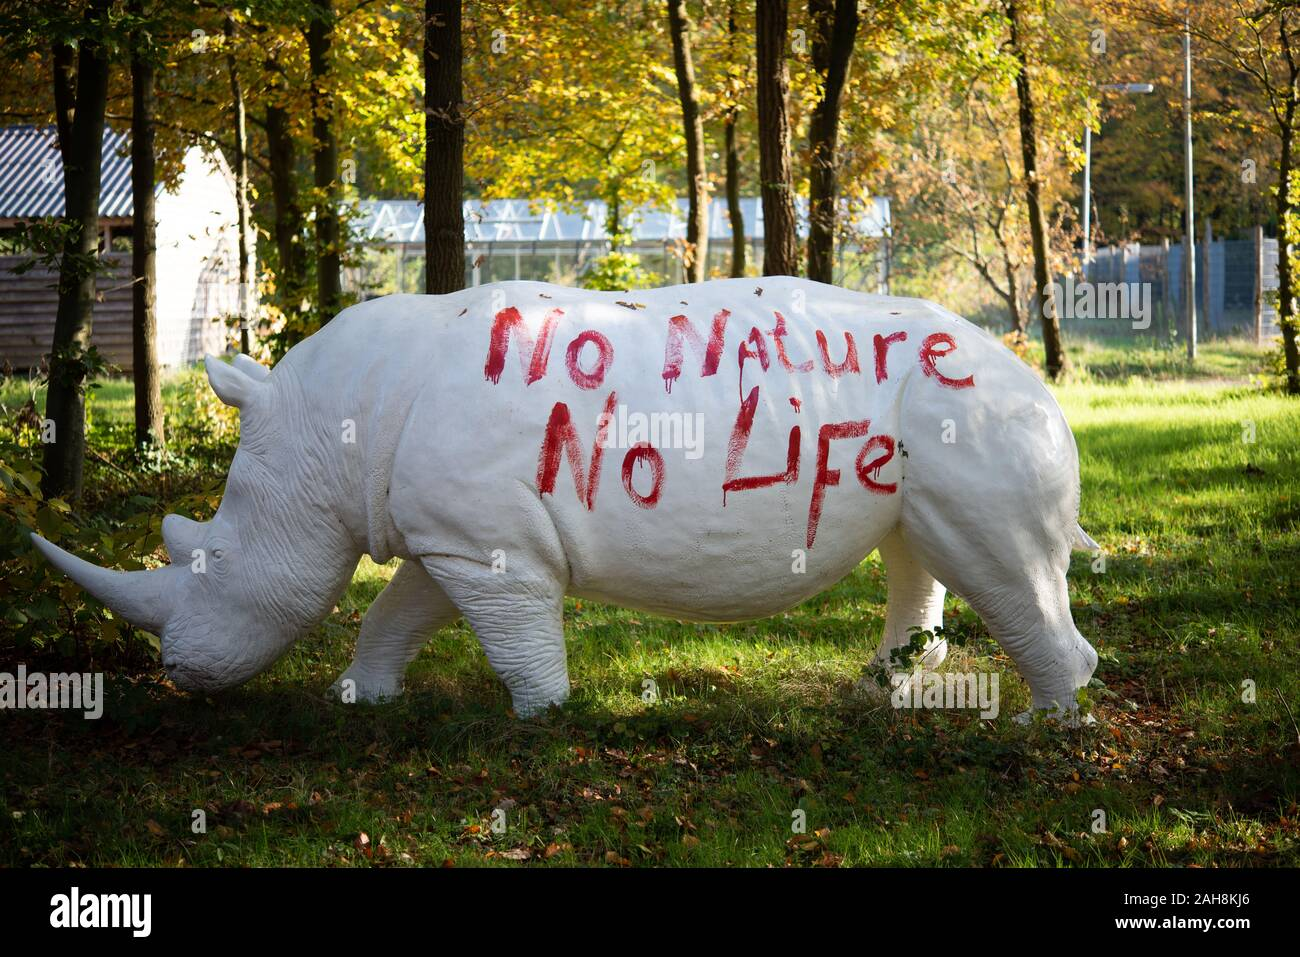 Statue off a white rhino or rhinoceros in the woodland Stock Photo